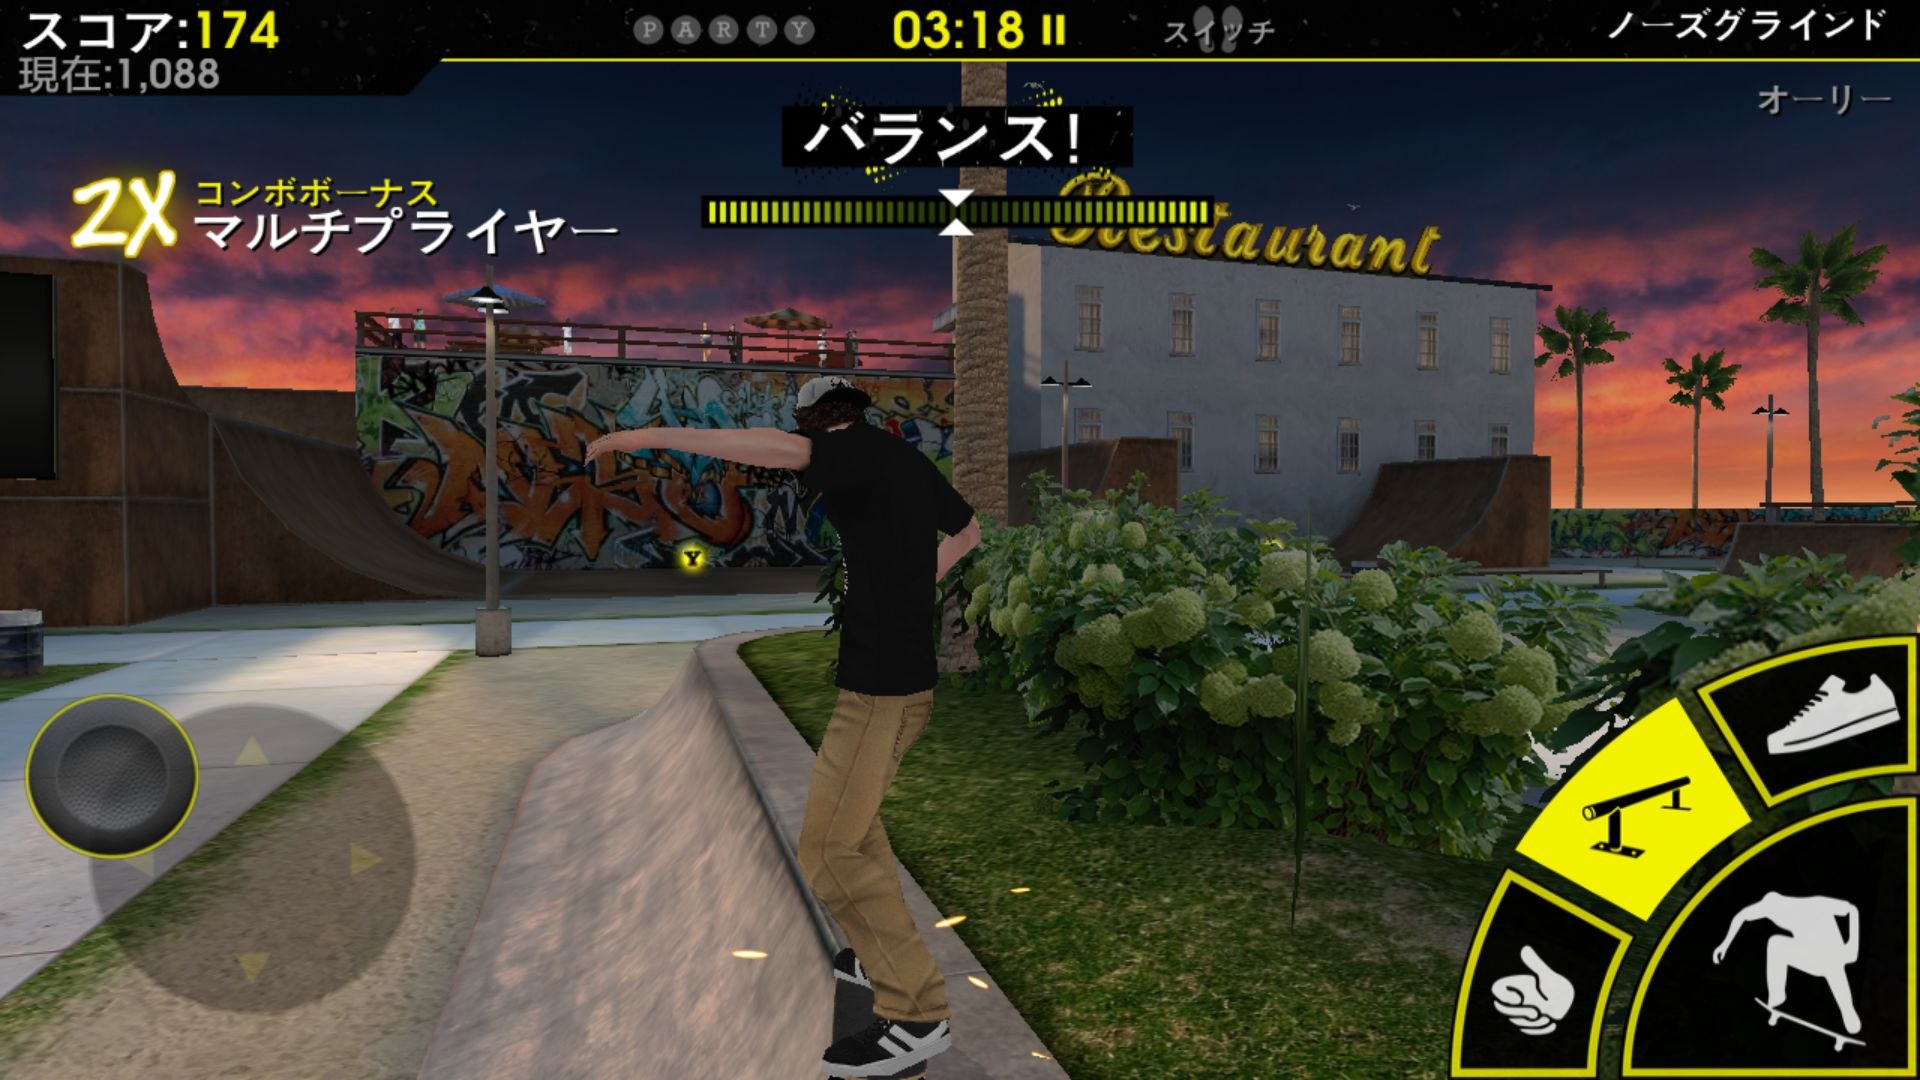 androidアプリ Skateboard Party 3 Lite Greg攻略スクリーンショット3